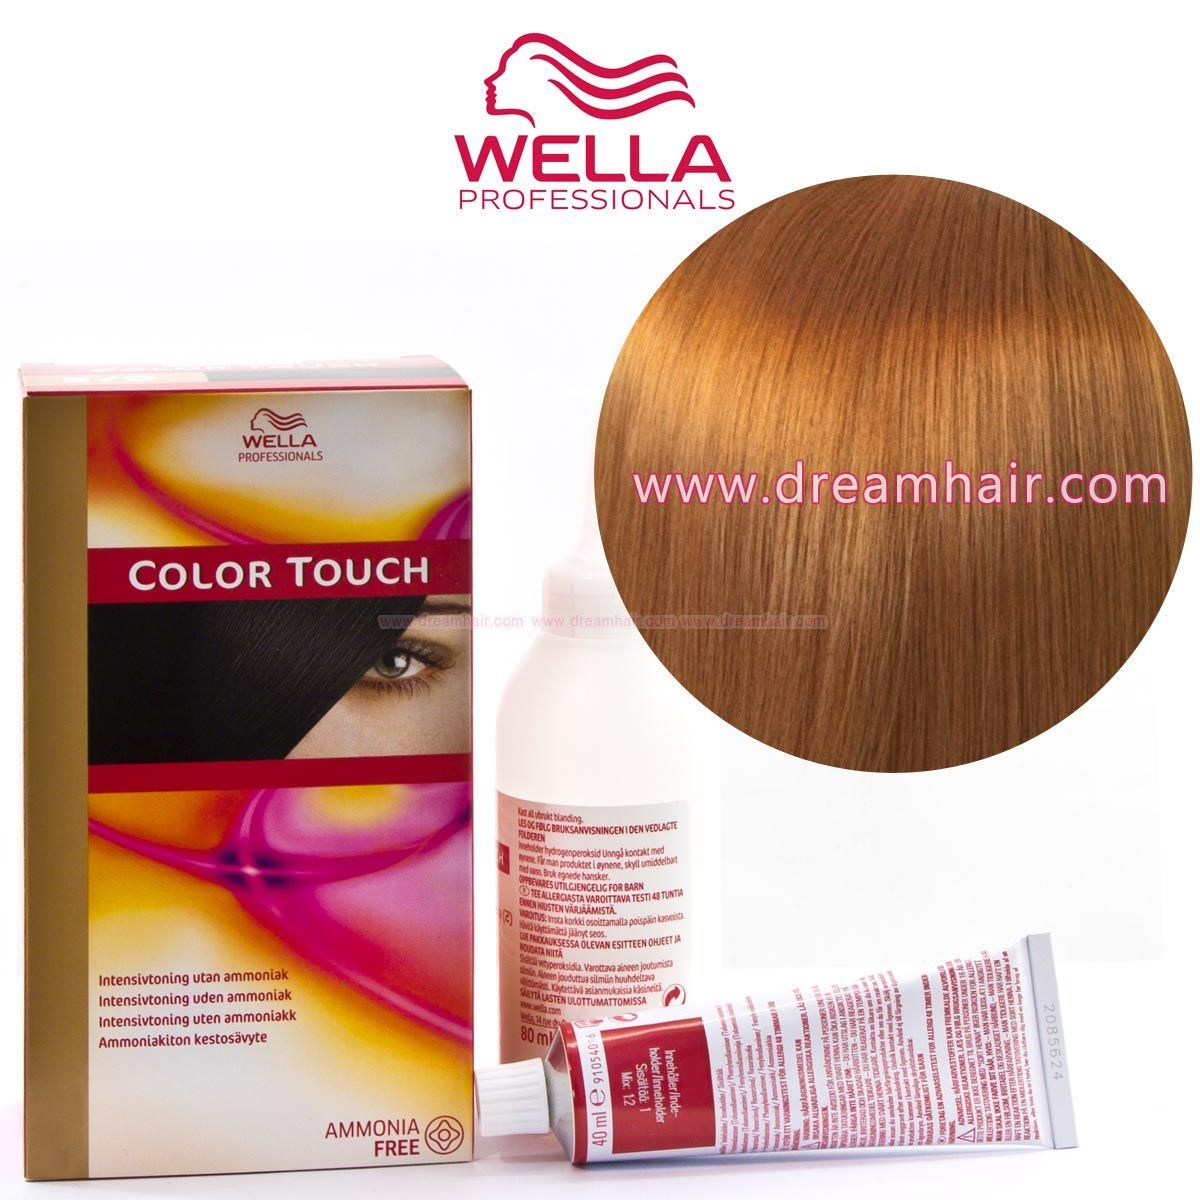 Wella Color Touch Demi Permanent Hair Color Home Kit 8/73